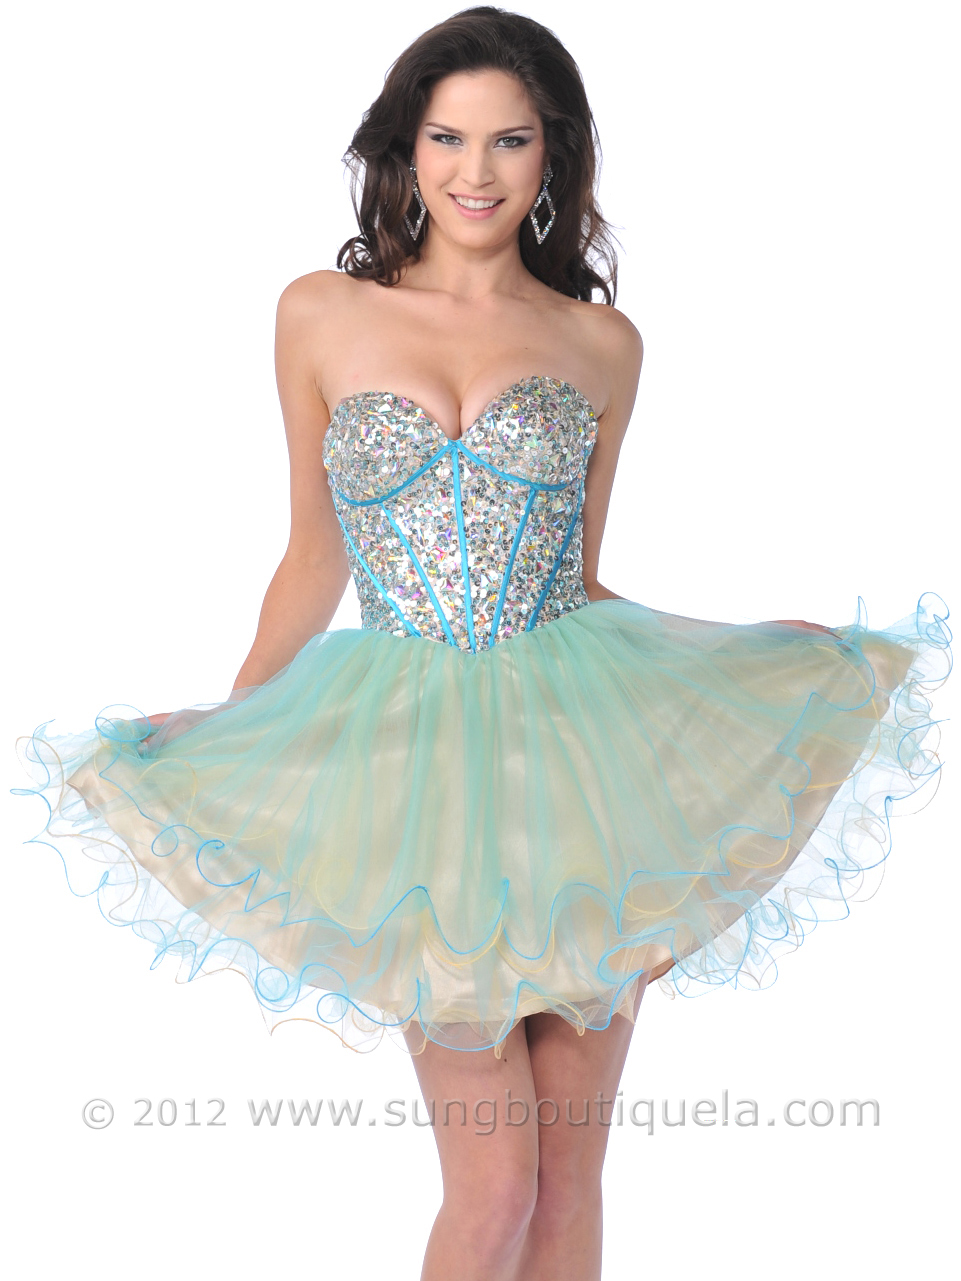 Corset Sequin Top Prom Dress | Sung Boutique L.A.